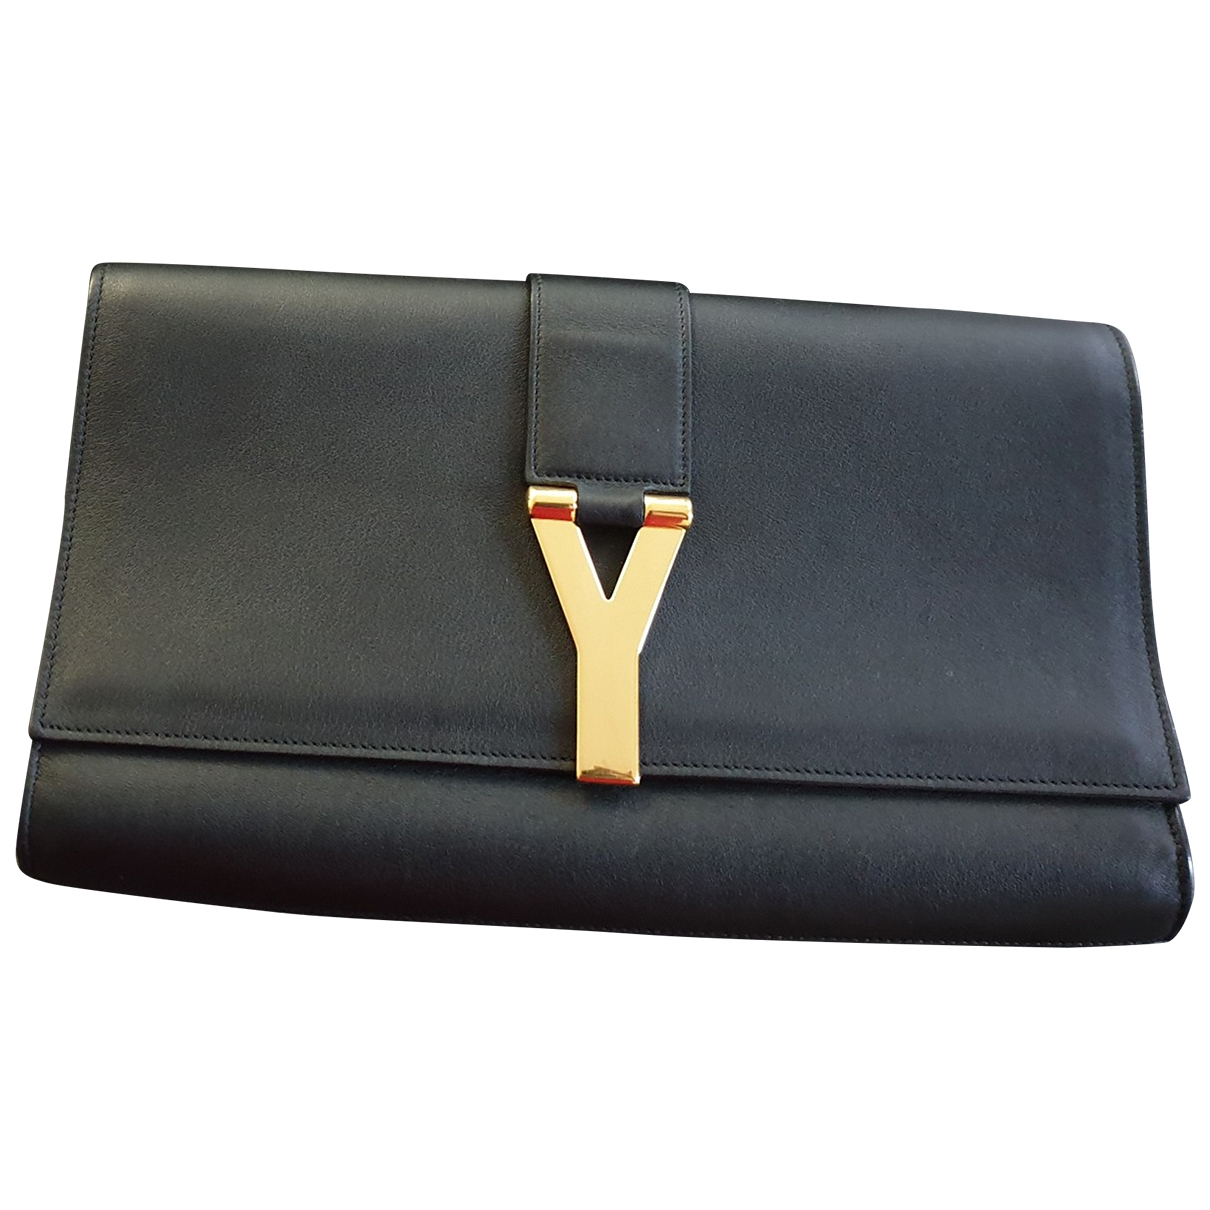 Saint Laurent Chyc Clutch in  Schwarz Leder